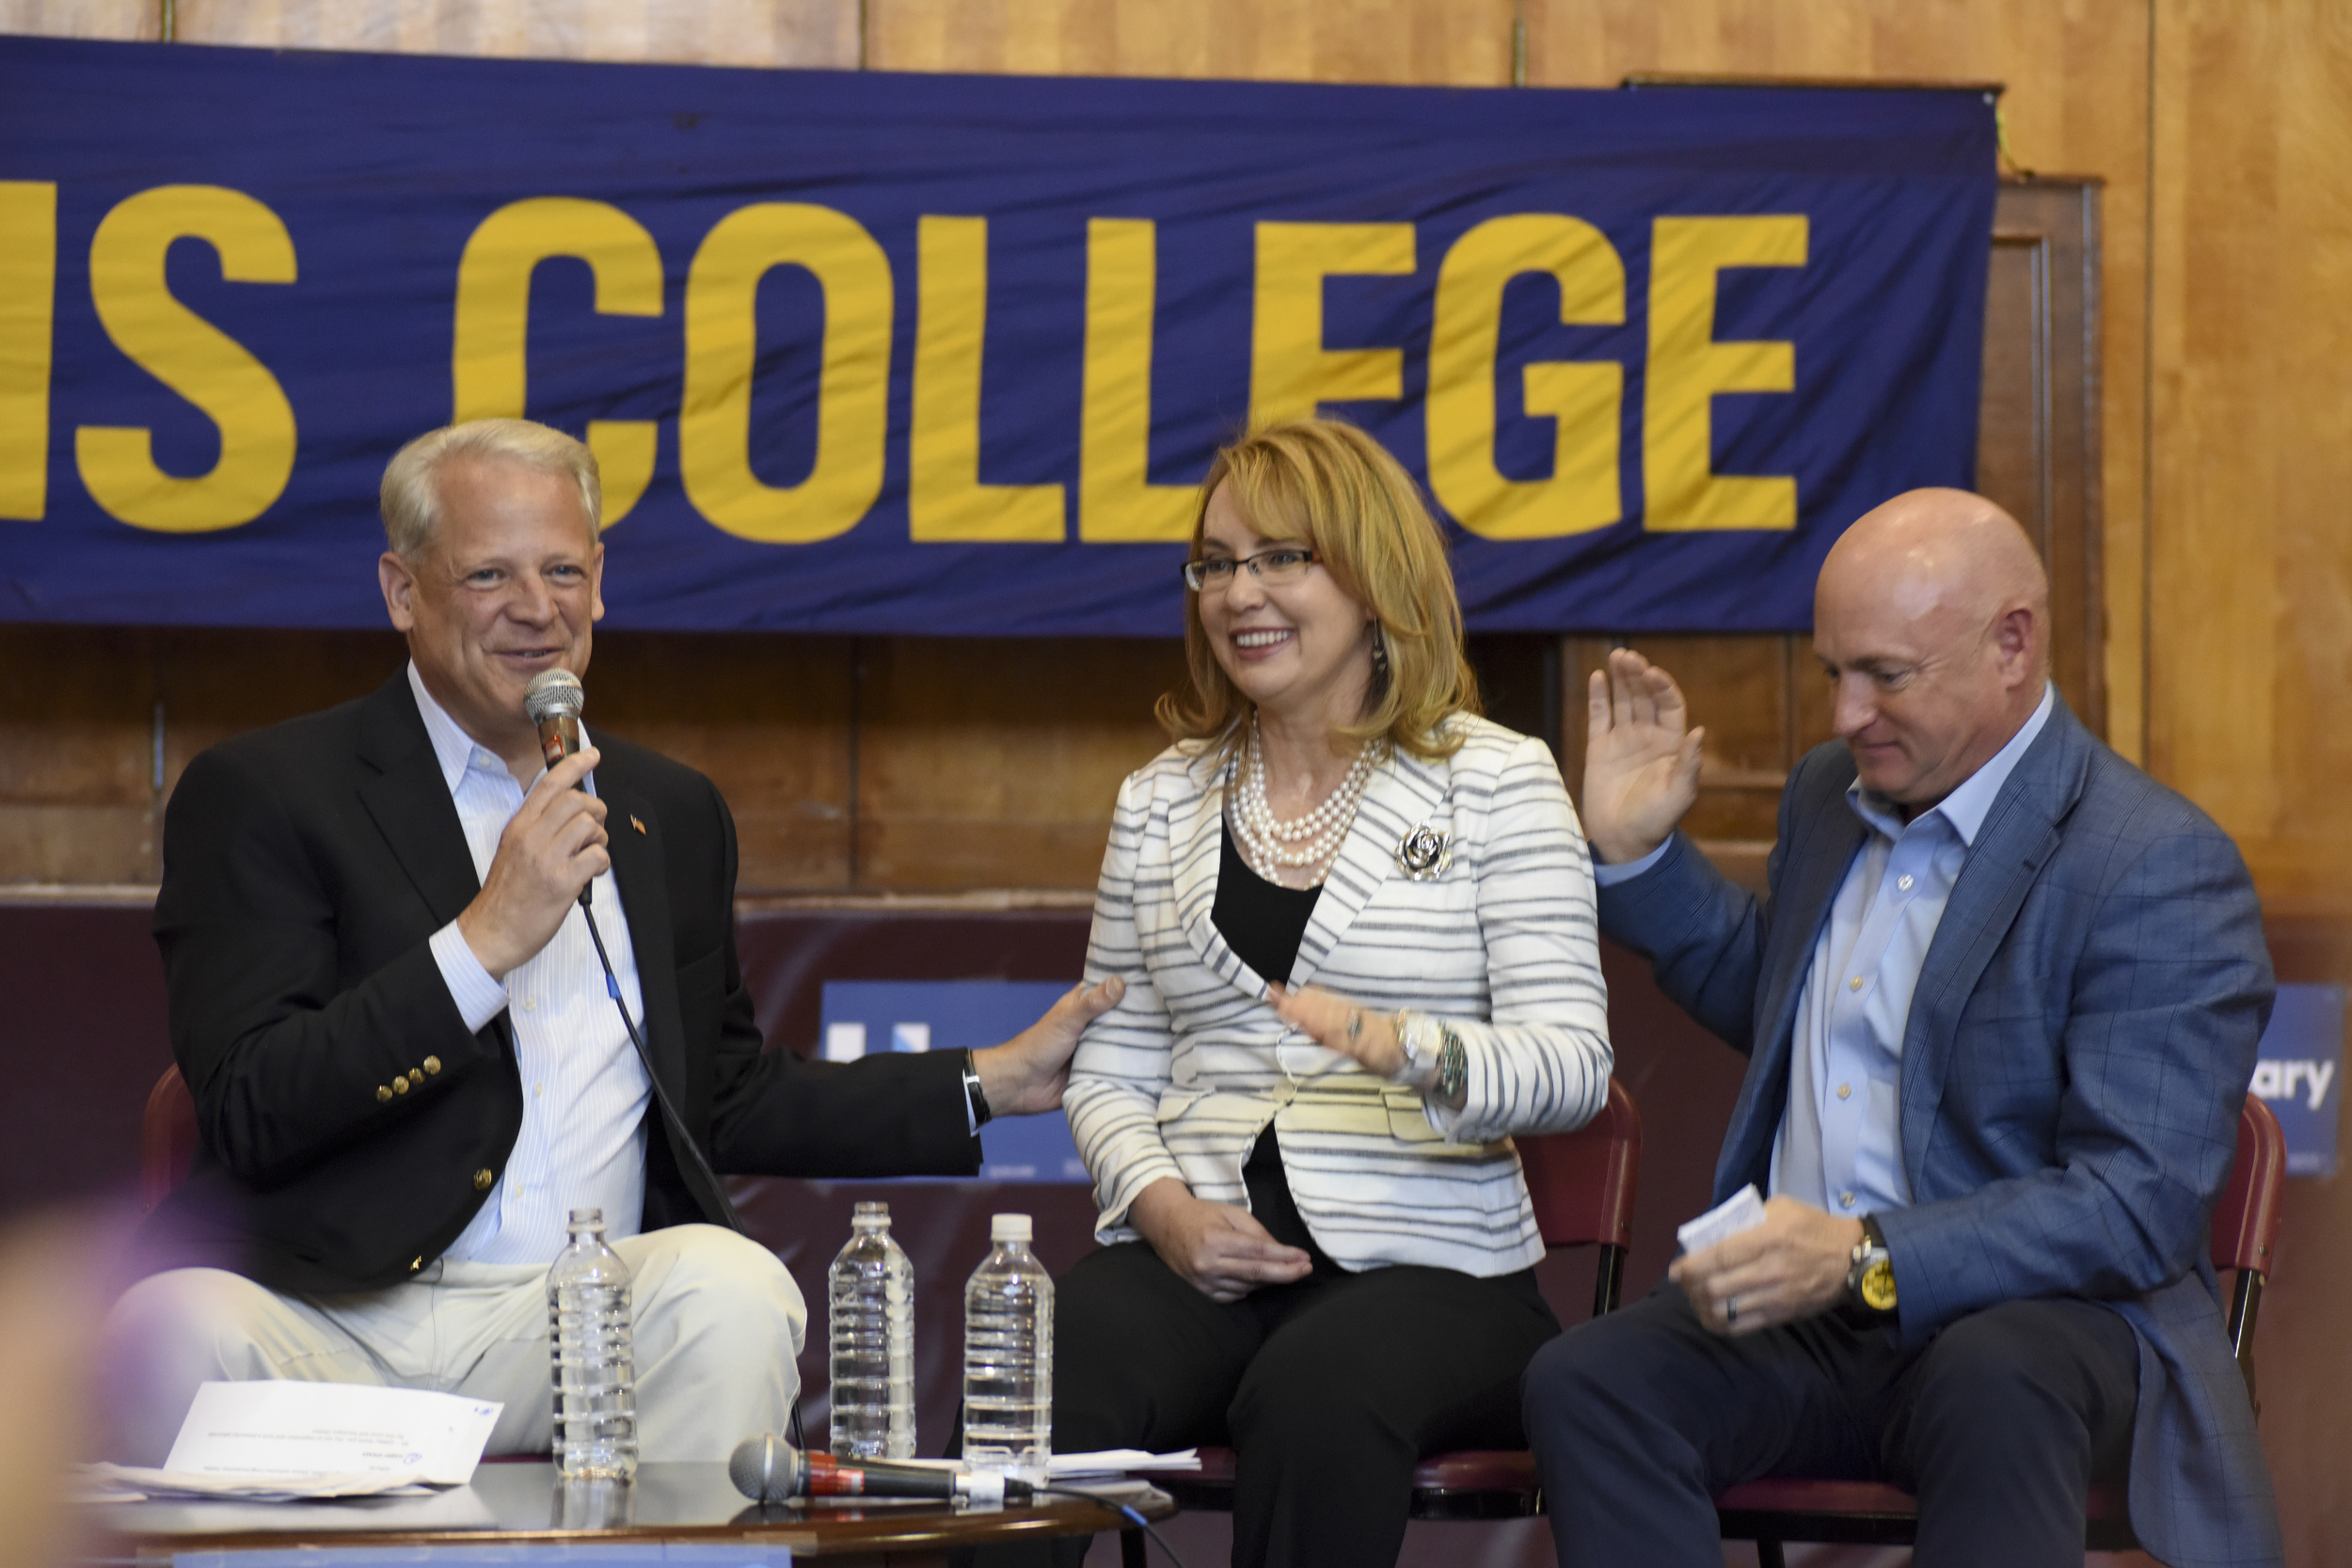 Rita Kestenbaum, Rep. Steve Israel, former Congresswoman Gabby Giffords and her husband, Mark Kelly, spoke in support of gun control at a campaign rally at Five Towns College in Dix Hills Sunday.